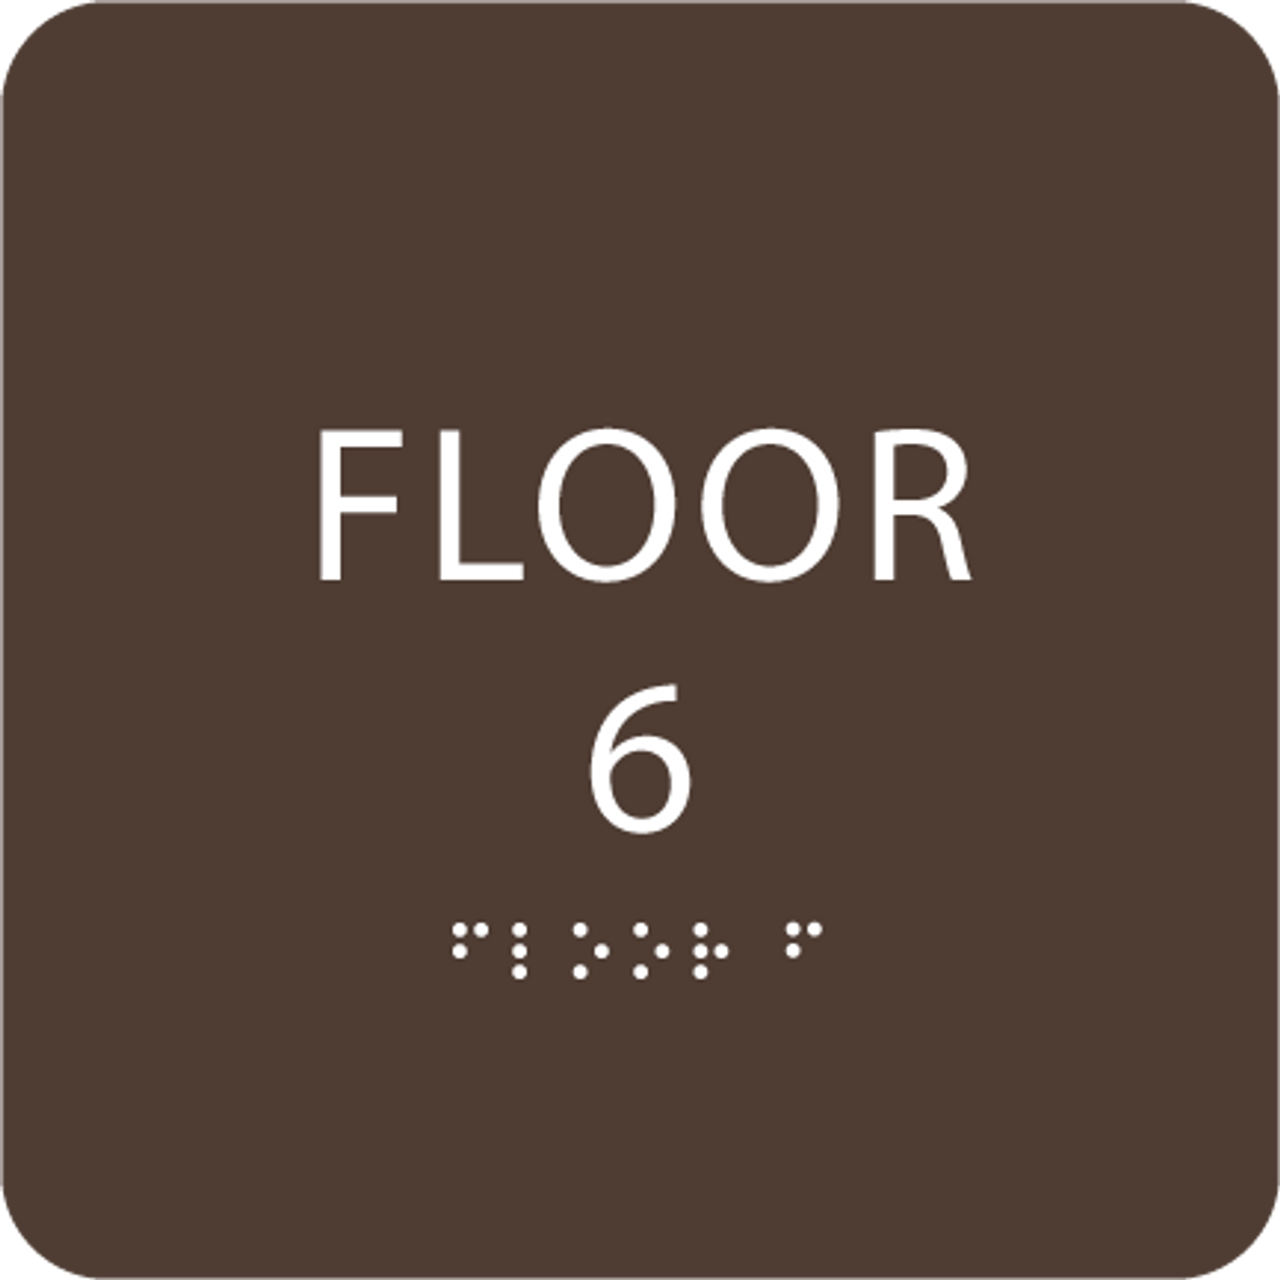 Dark Brown Floor 6 Level Identification ADA Sign